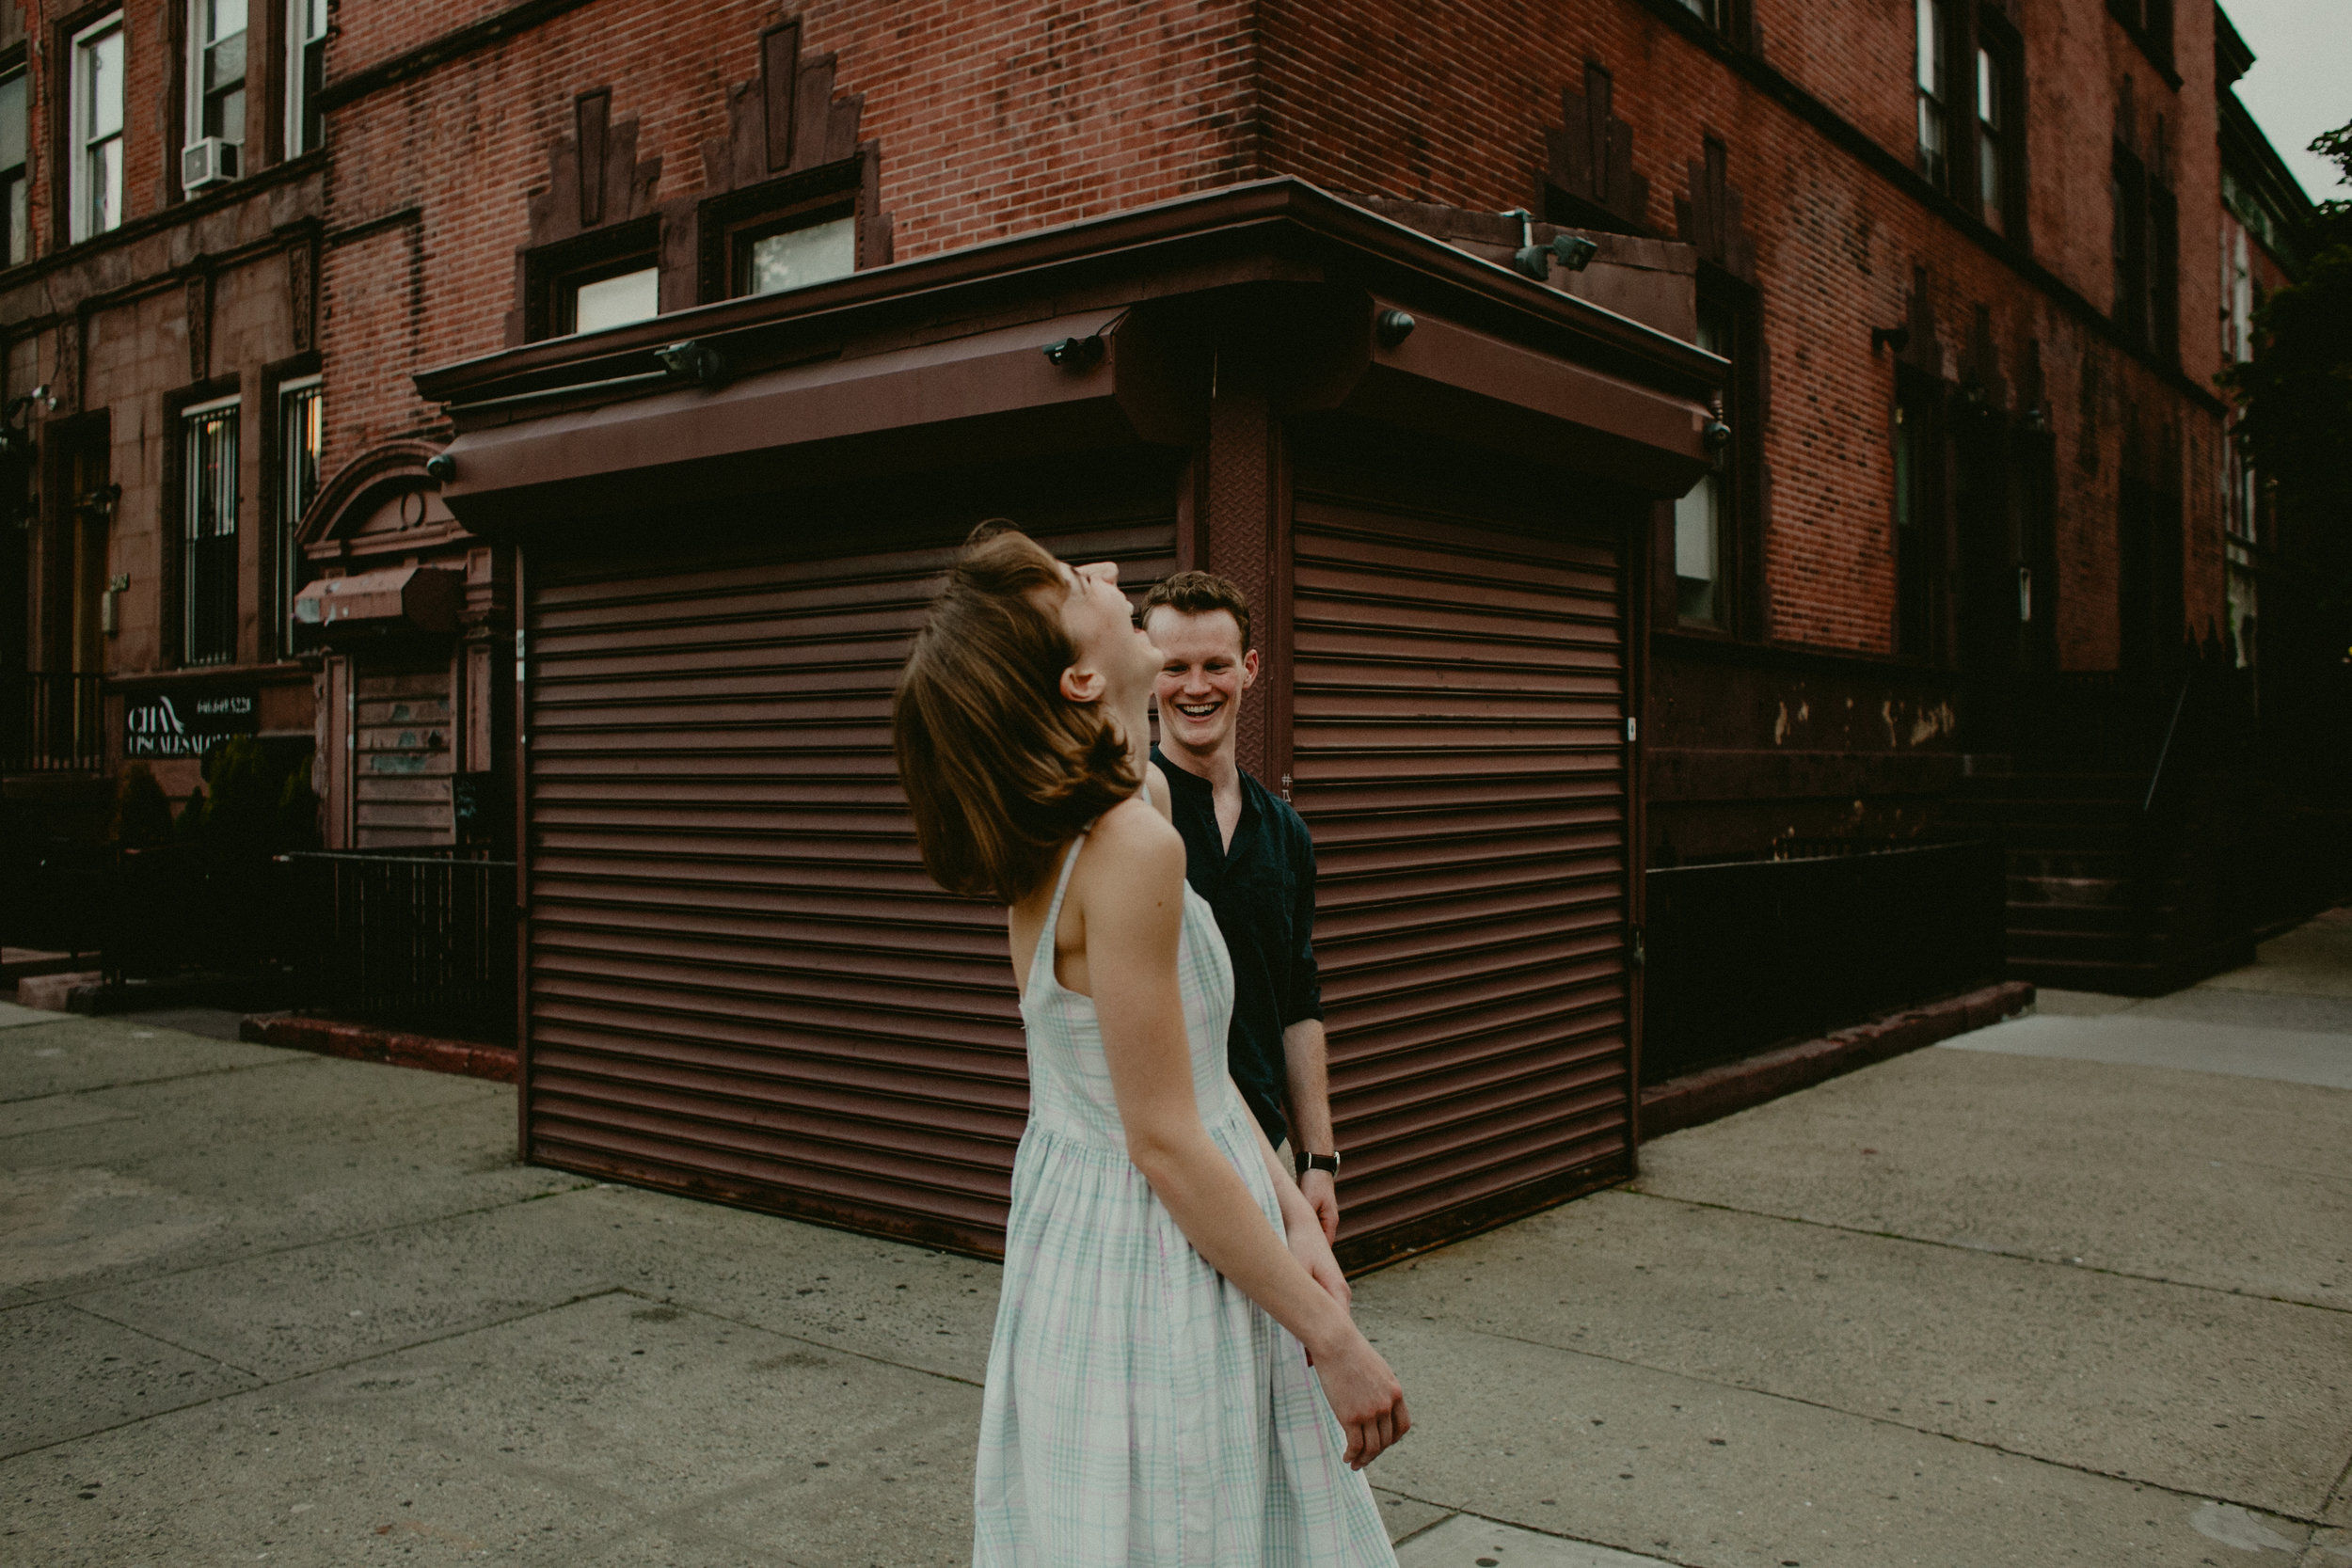 Brooklyn_Wedding_Photographer_Chellise_Michael_Photography-92.jpg